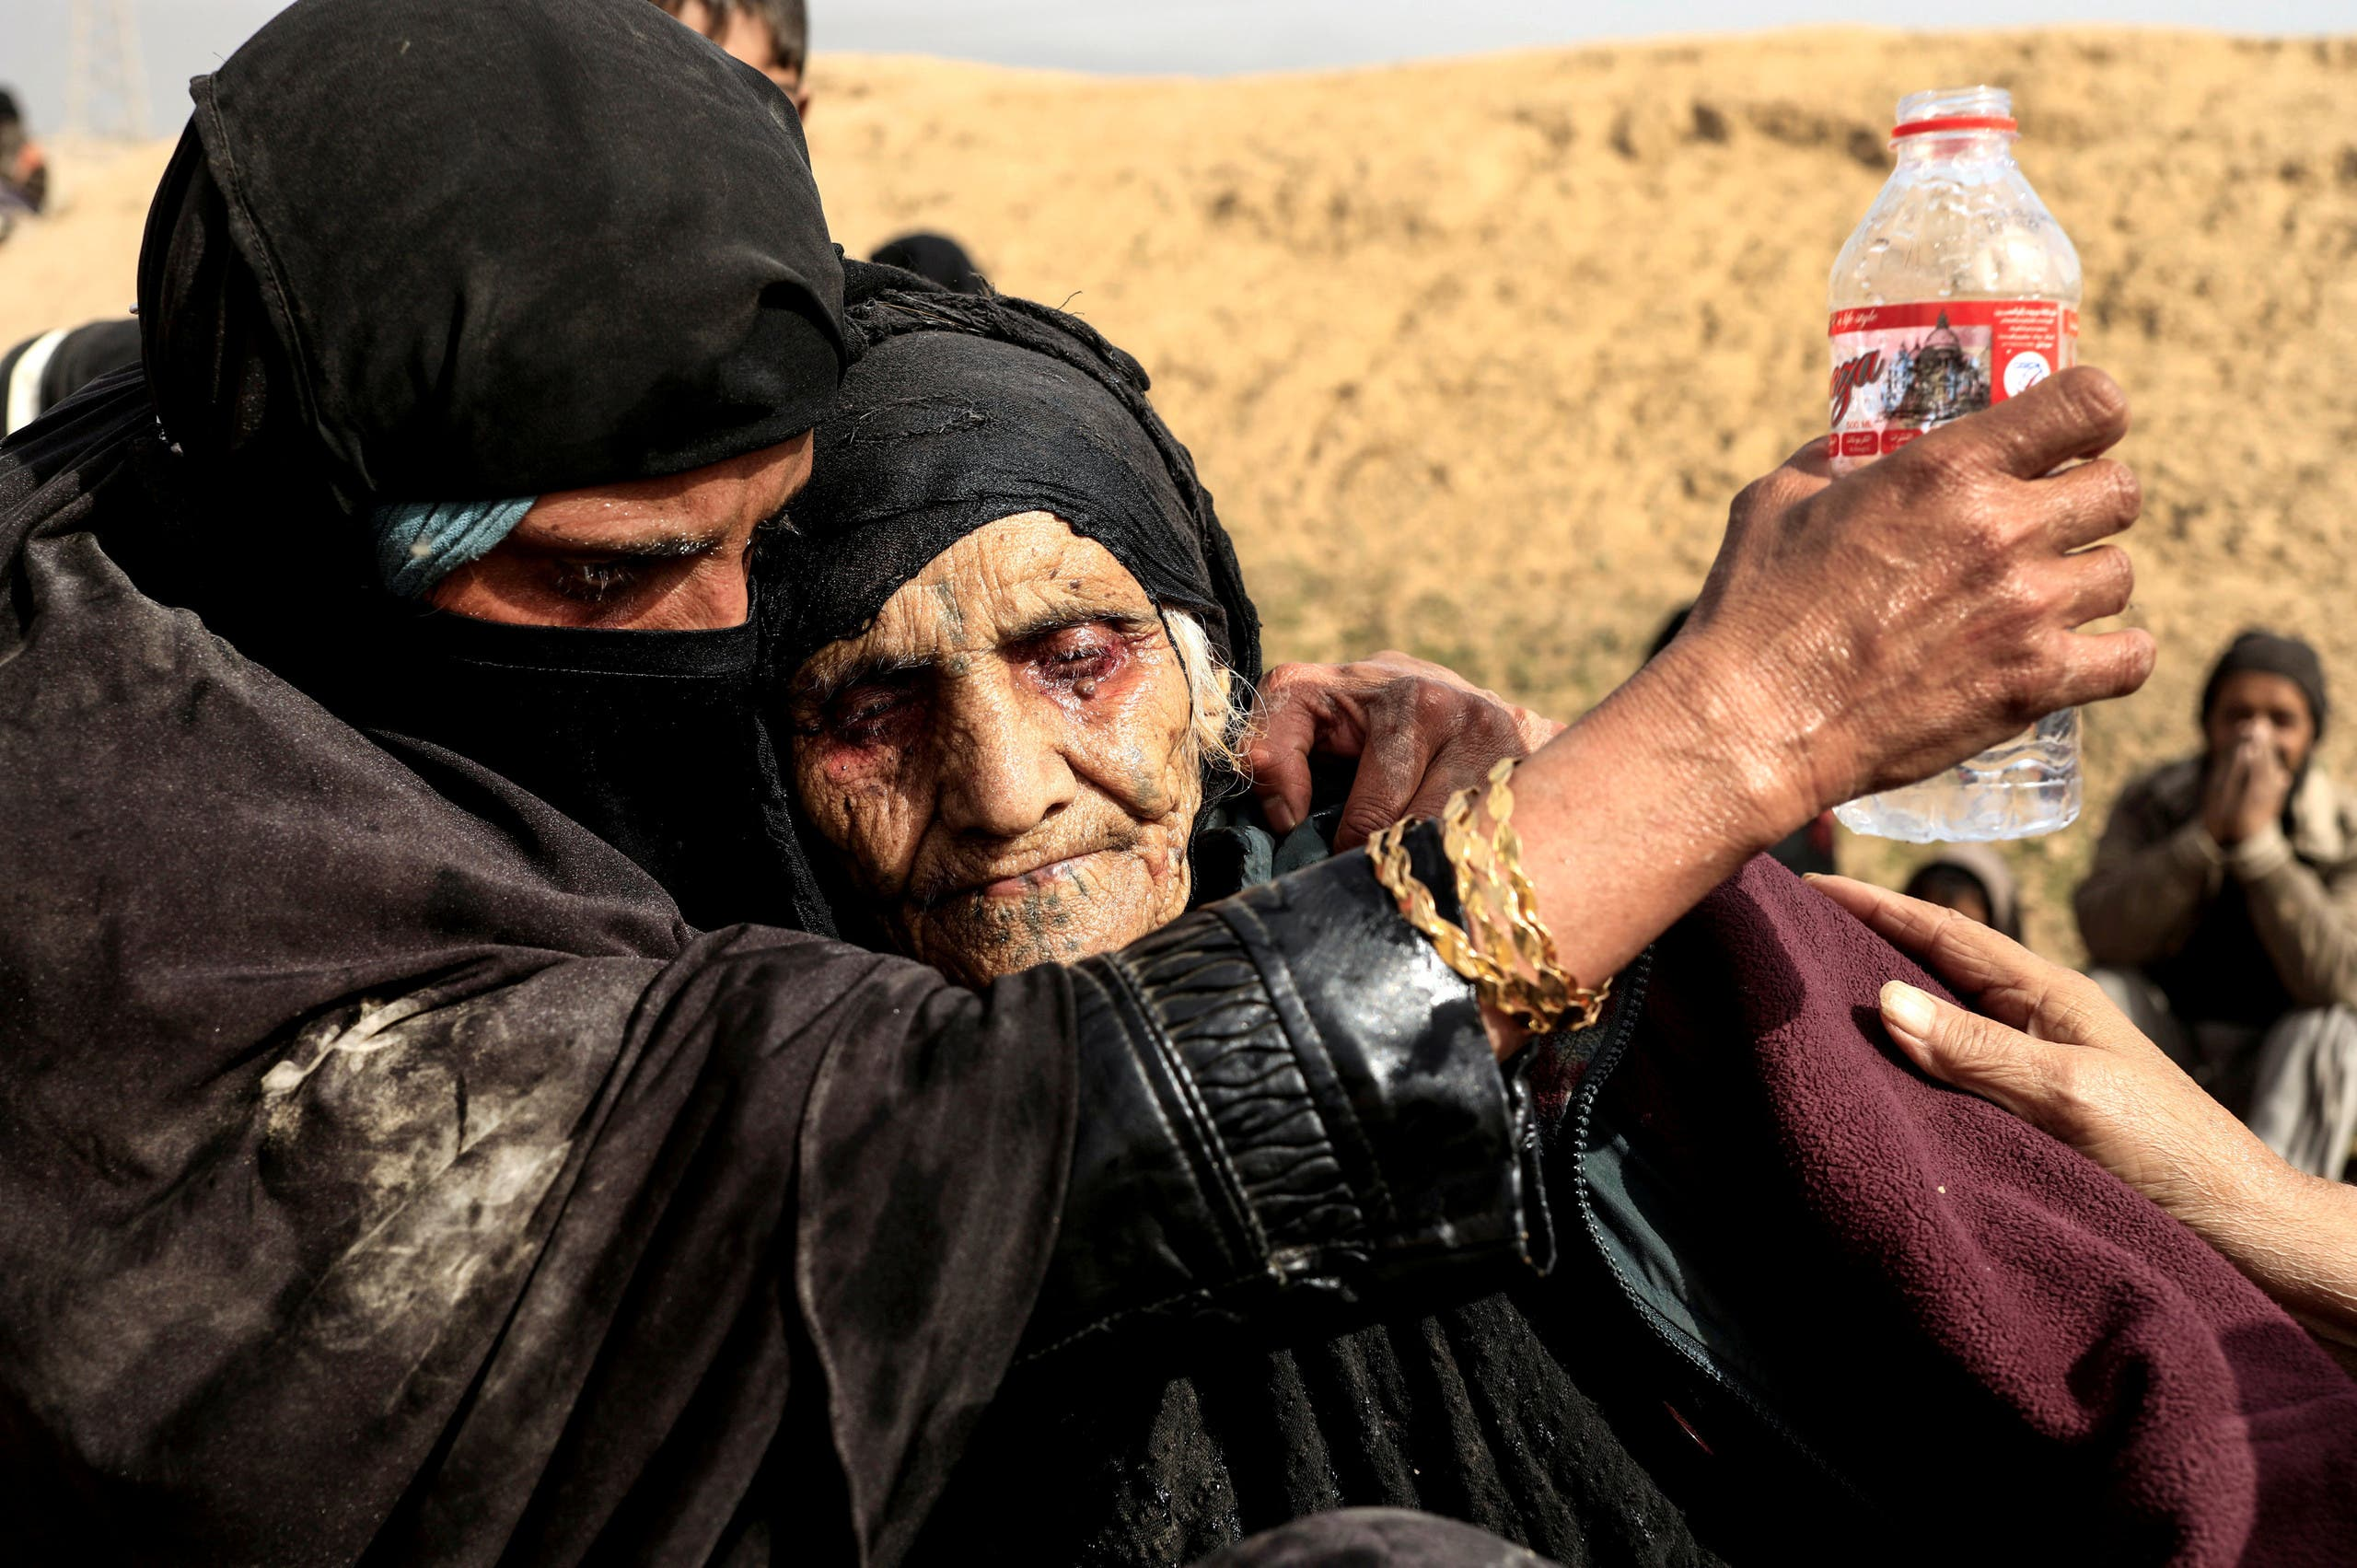 Displaced Iraqi women, who just fled their home, rest in the desert as they wait to be transported while Iraqi forces battle with ISIS militants in western Mosul, Iraq, February 27, 2017. (Reuters)